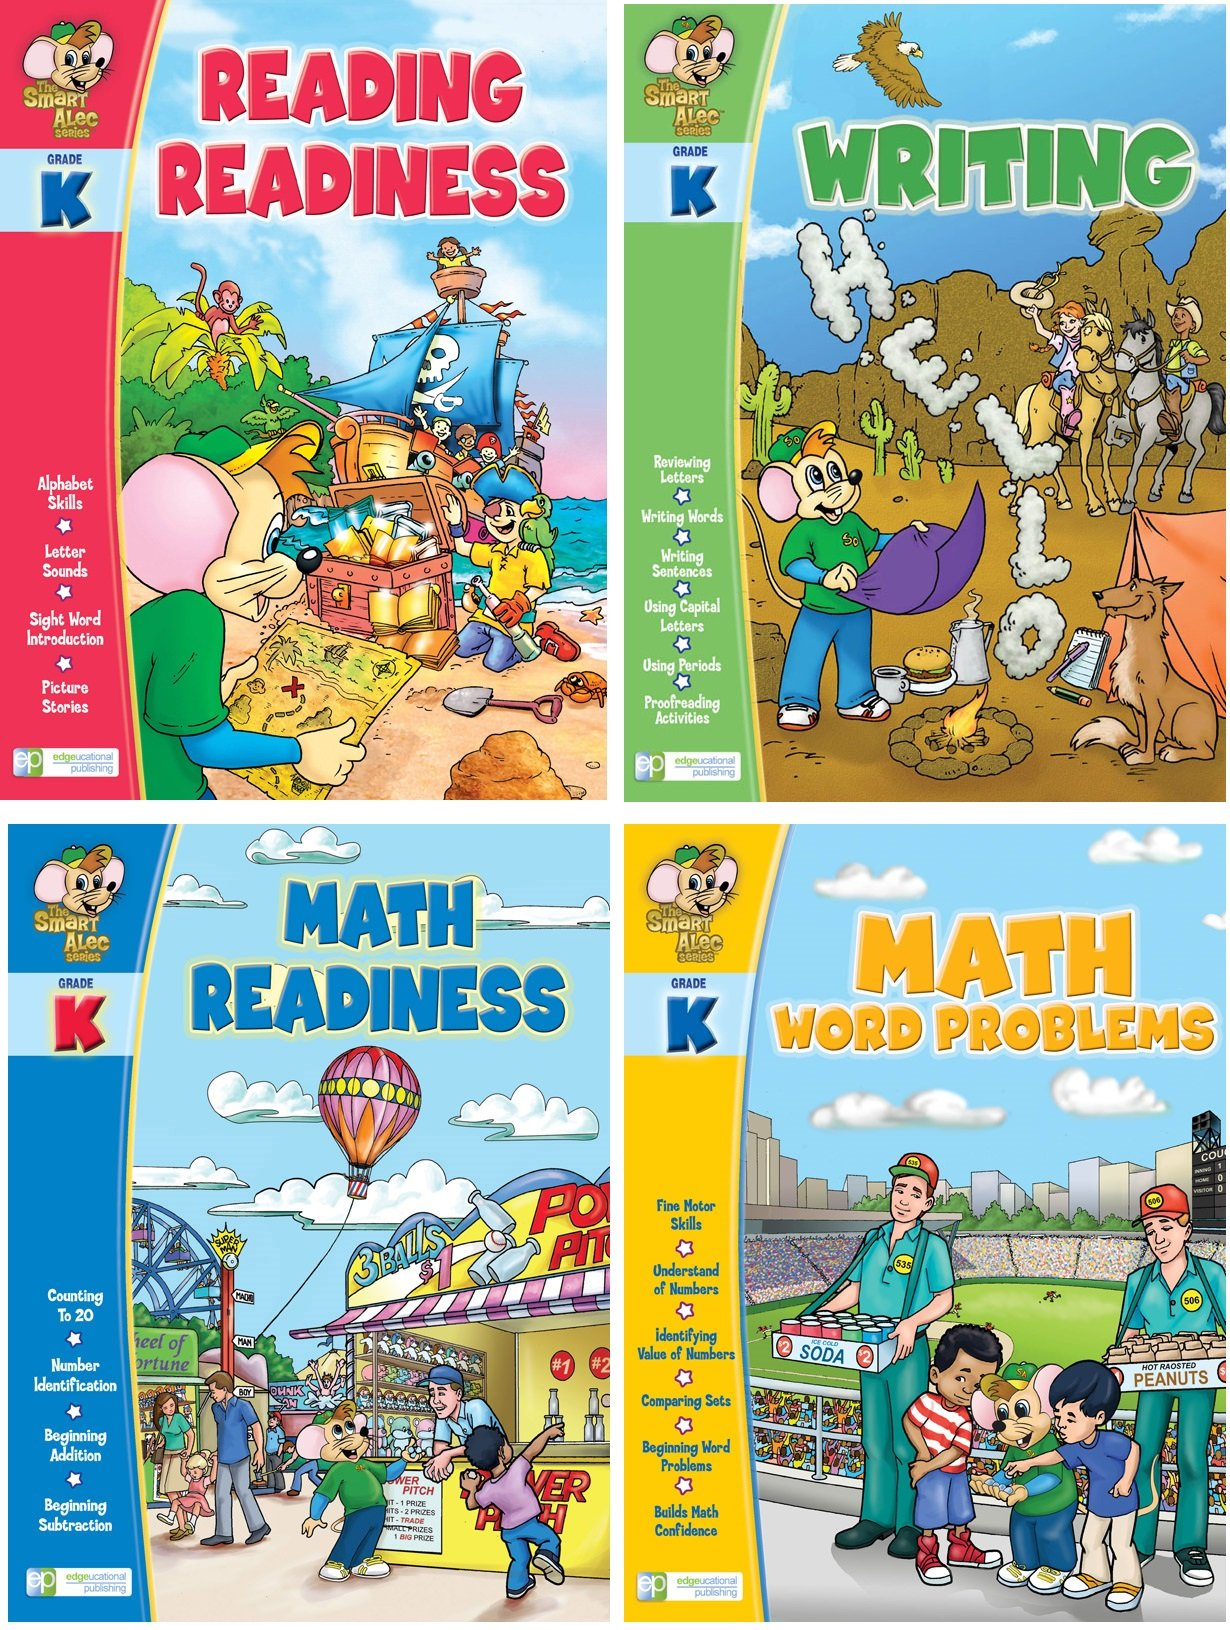 Smart Alec (Grade K) Four Pack Learning Series, Includes: Writing, Math Readiness, Reading Readiness, Math Word Problems